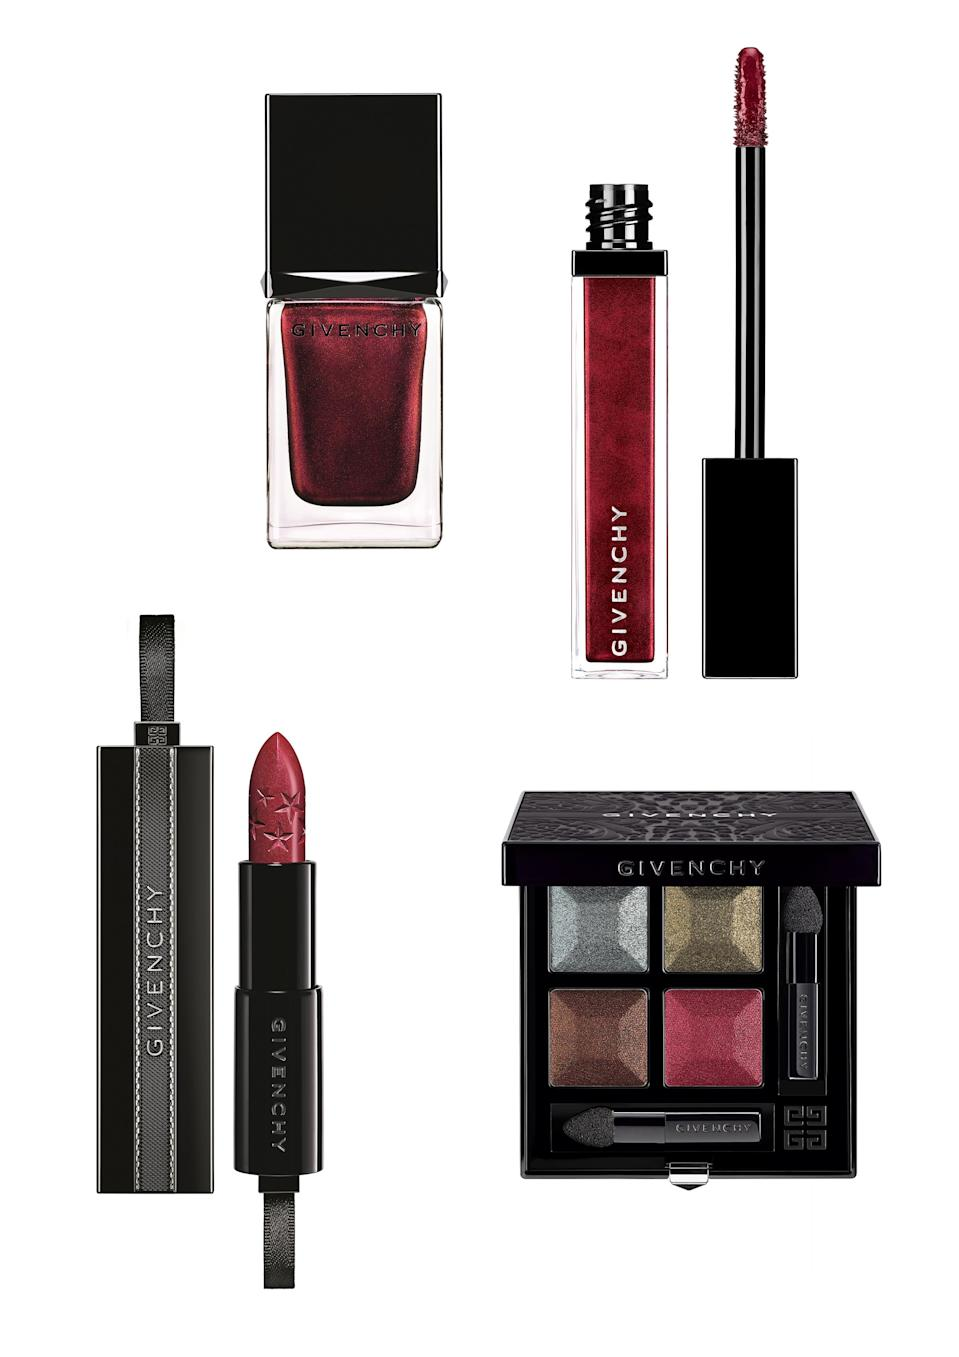 <p>Give your make-up bag a bit of a overhaul as autumn rolls round with these luxe new buys from Givenchy. From a pretty palette to a velvety lipstick, break out of your nude cosmetic rut with this decadent collection. </p>